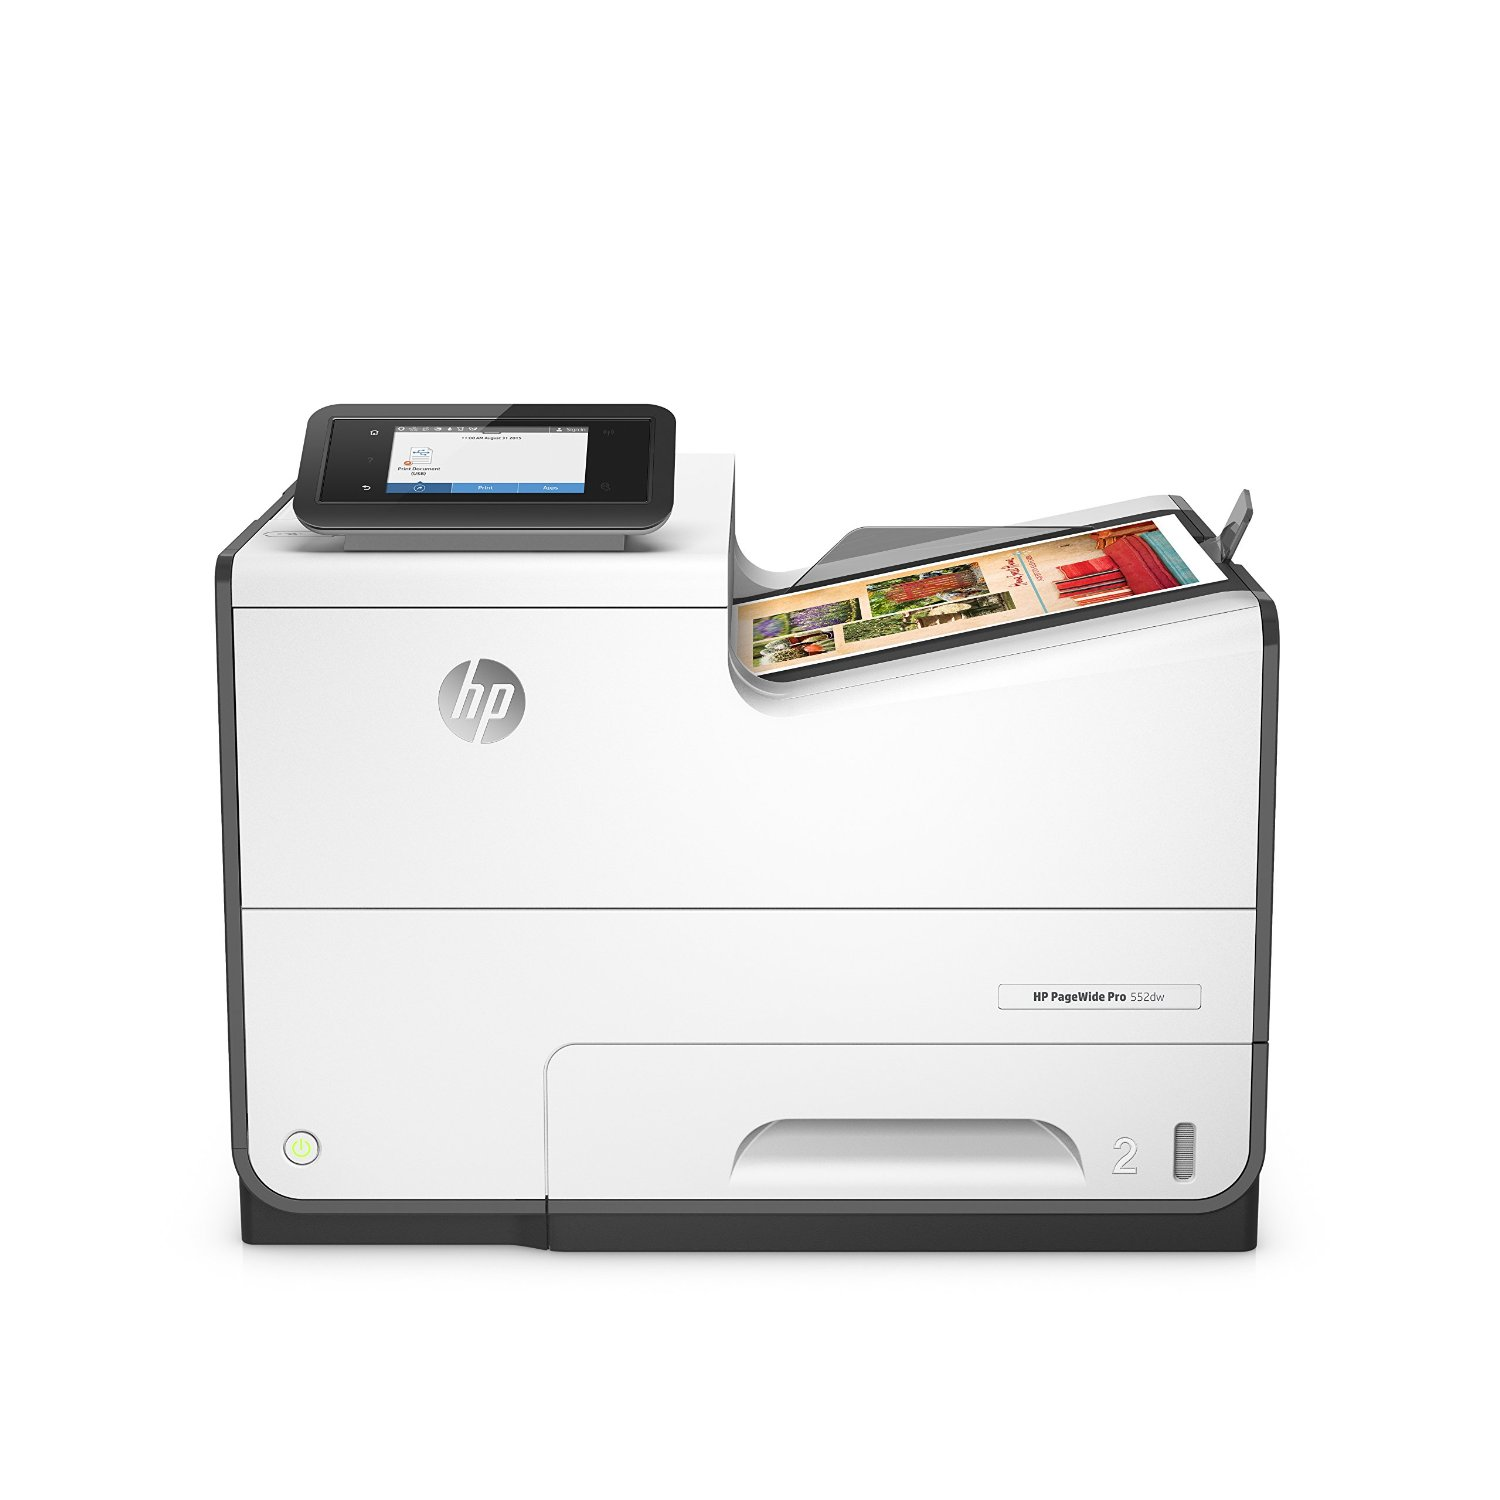 HP PageWide Pro 552dw Color Printer (D3Q17A) Release Date